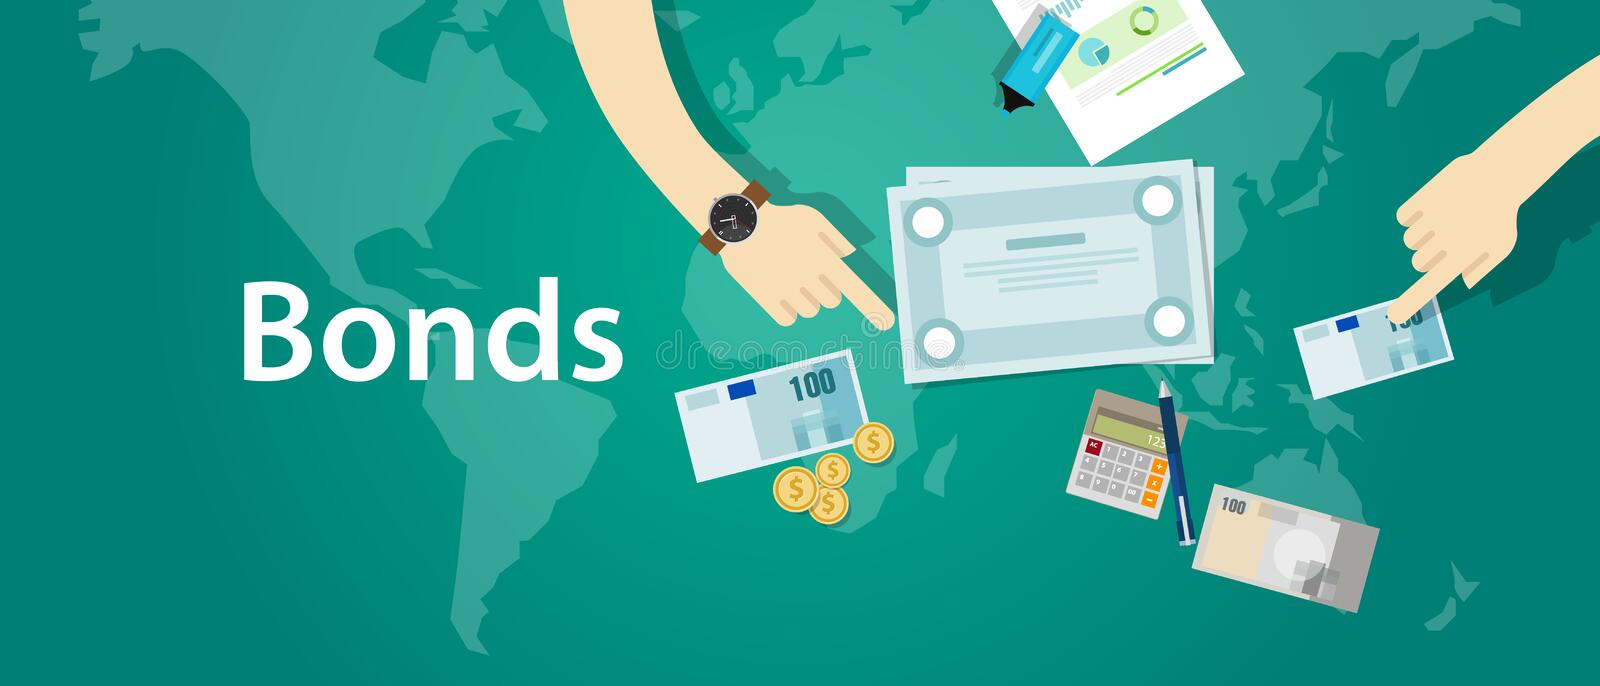 Bonds company corporate funds financing royalty free illustration